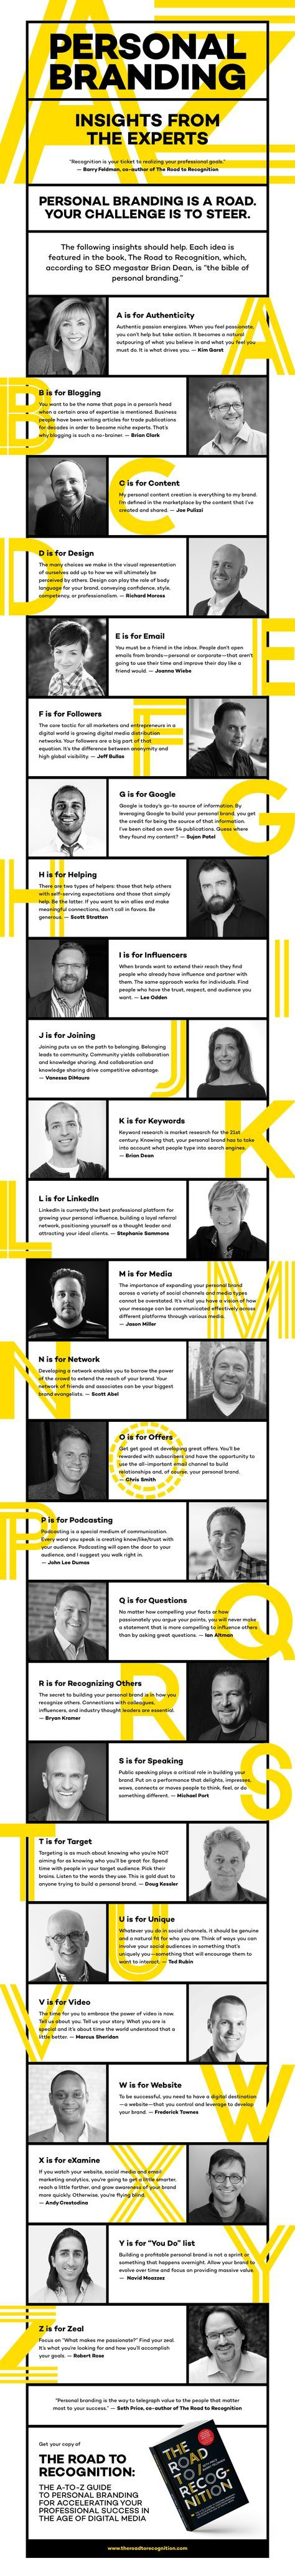 Personal Branding Tips from 28 Experts [Infographic]   Social Media Today